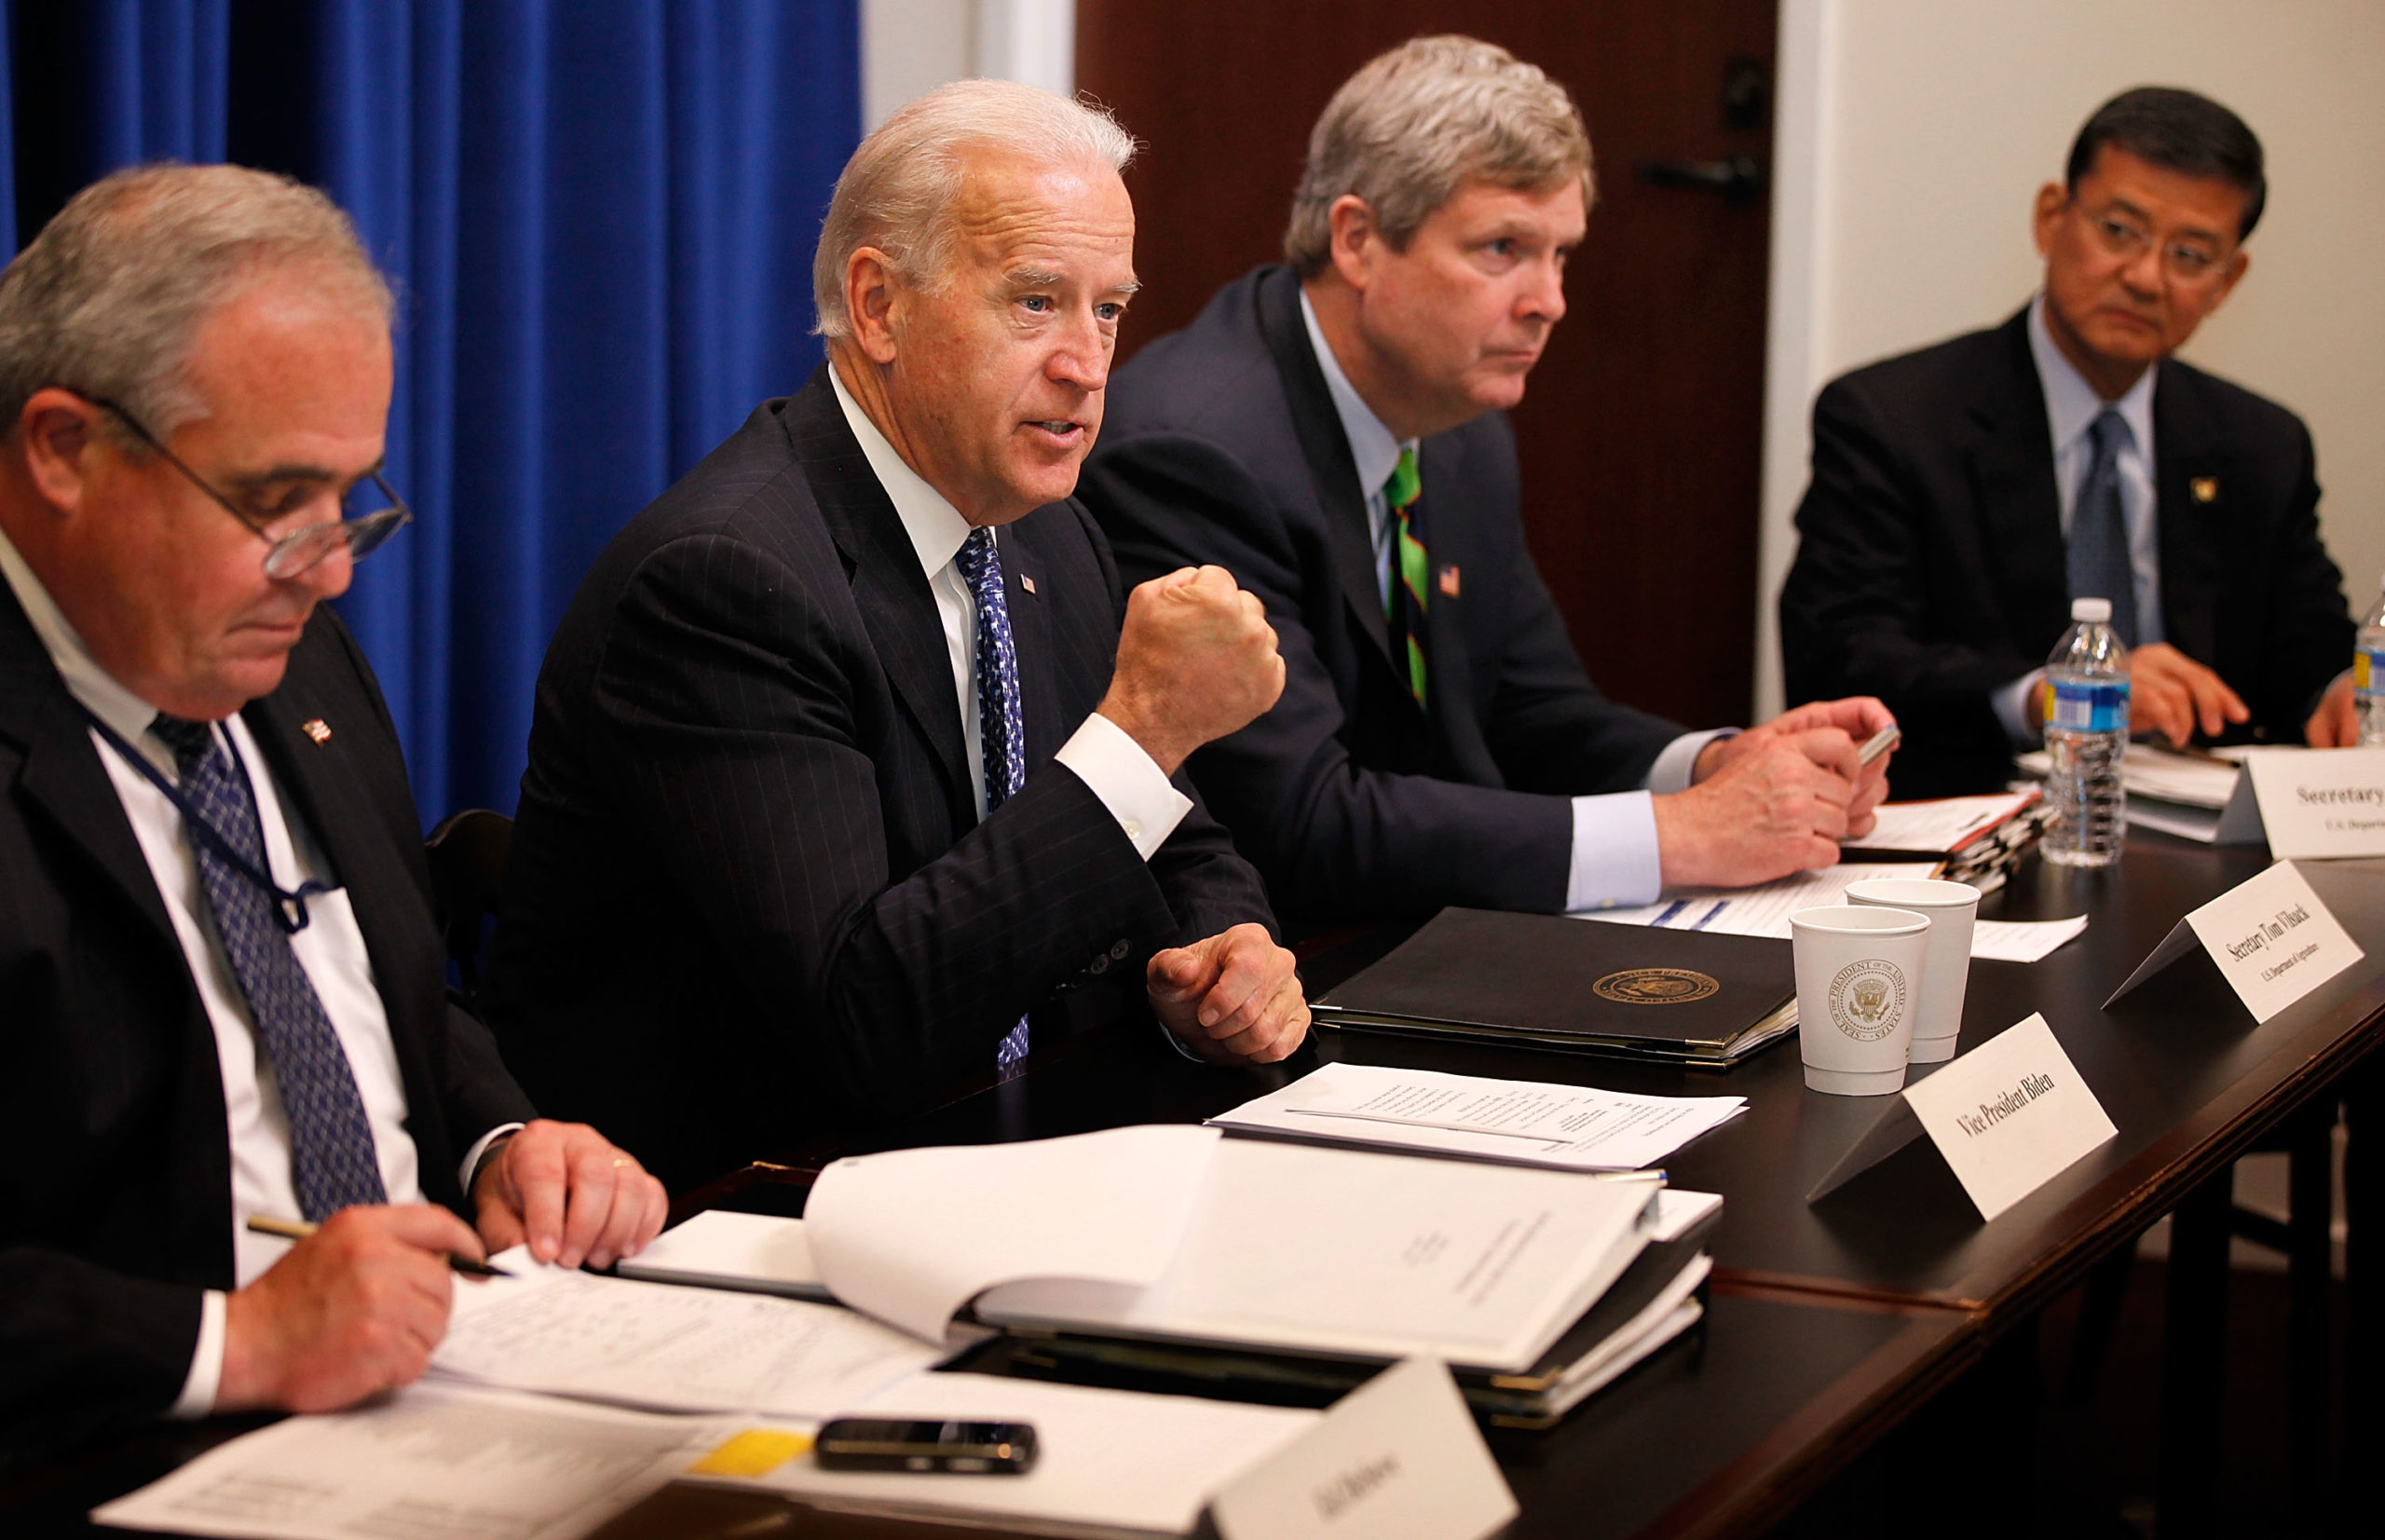 Former Vice President Joe Biden leads a cabinet meeting with Agriculture Sec. Tom Vilsack and other Obama Administration department heads on April 29, 2010 in Washington, D.C. (Chip Somodevilla/Getty Images)